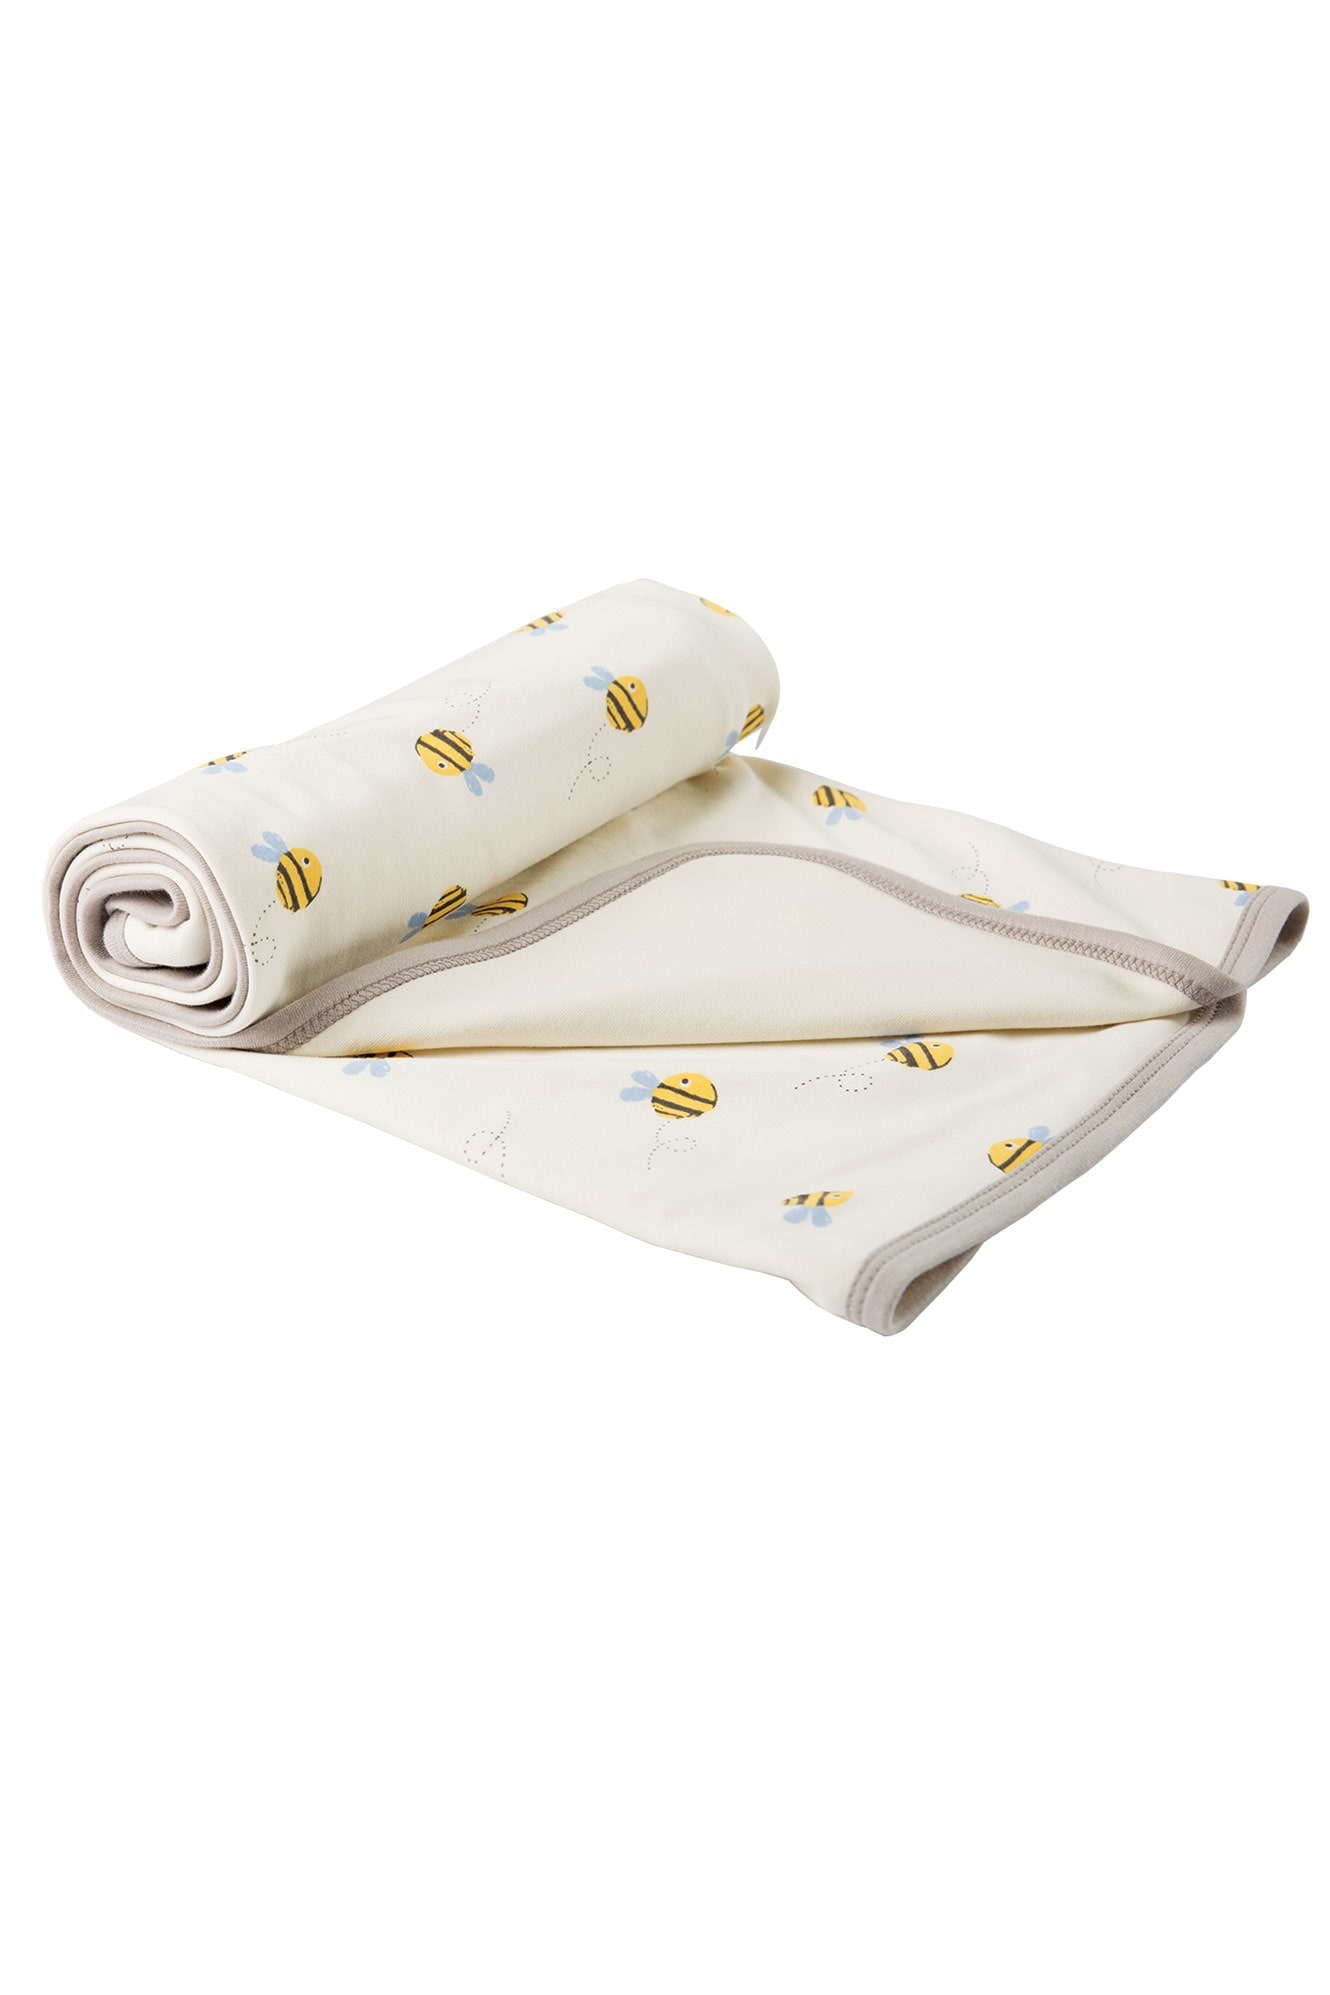 Stockists of Buzzy Bee Blanket